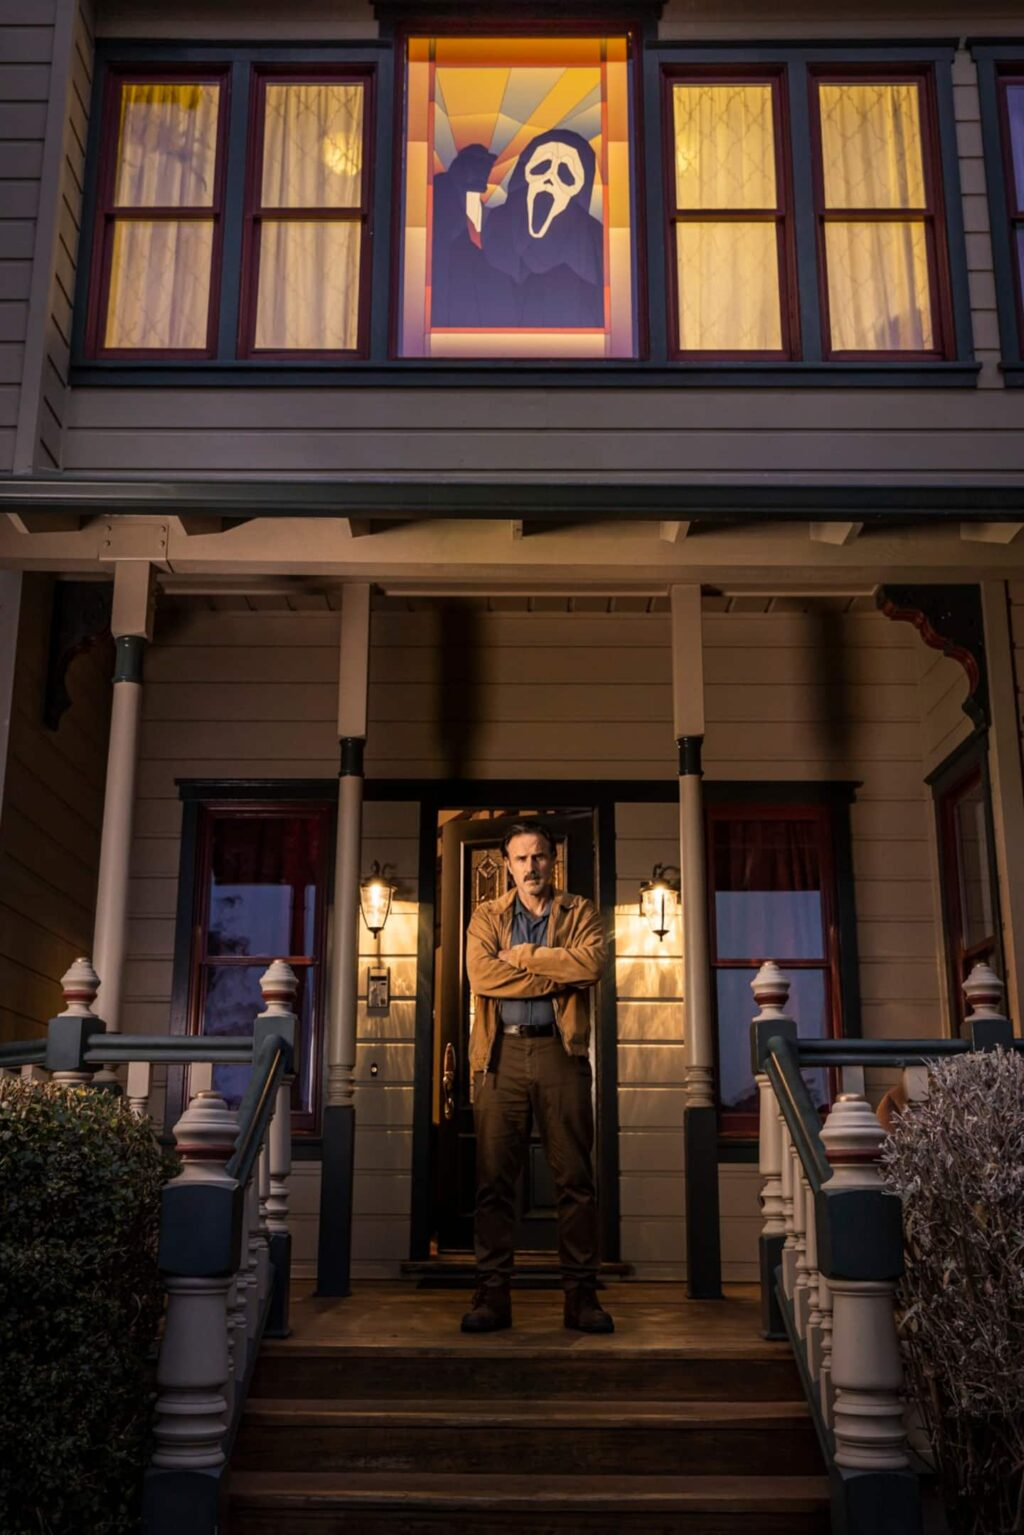 Scream house 1024x1535 - Do You Like Scary Movies? Stay at the 'Scream' House with David Arquette